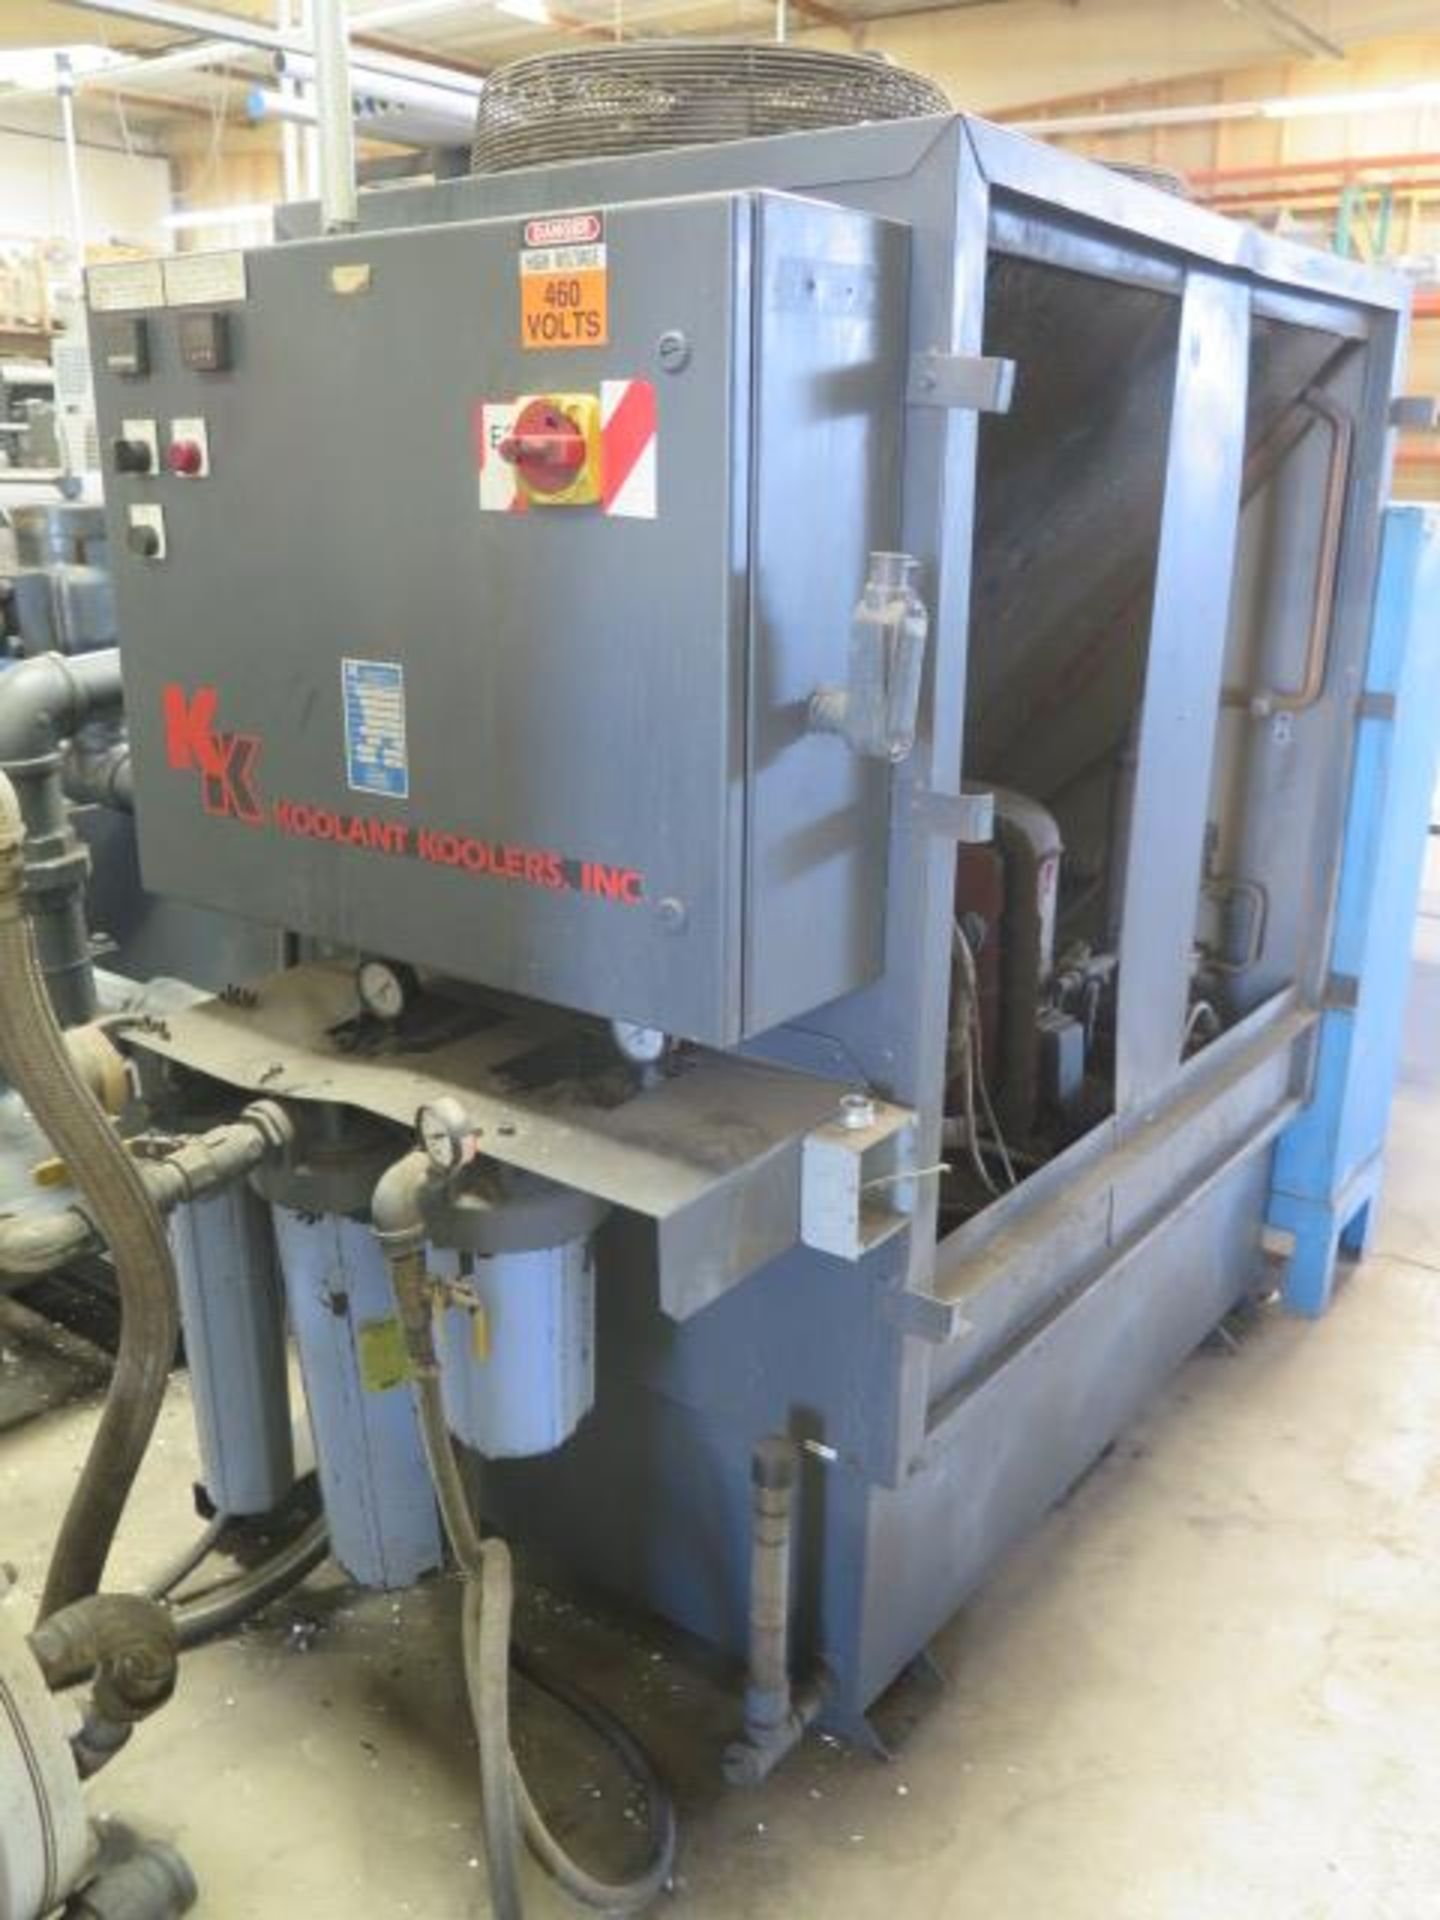 Laker-Craven-100 CNC Deep Hole Drilling Machine s/n 1241 w/ Fanuc Power MATE Controls, SOLD AS IS - Image 23 of 41